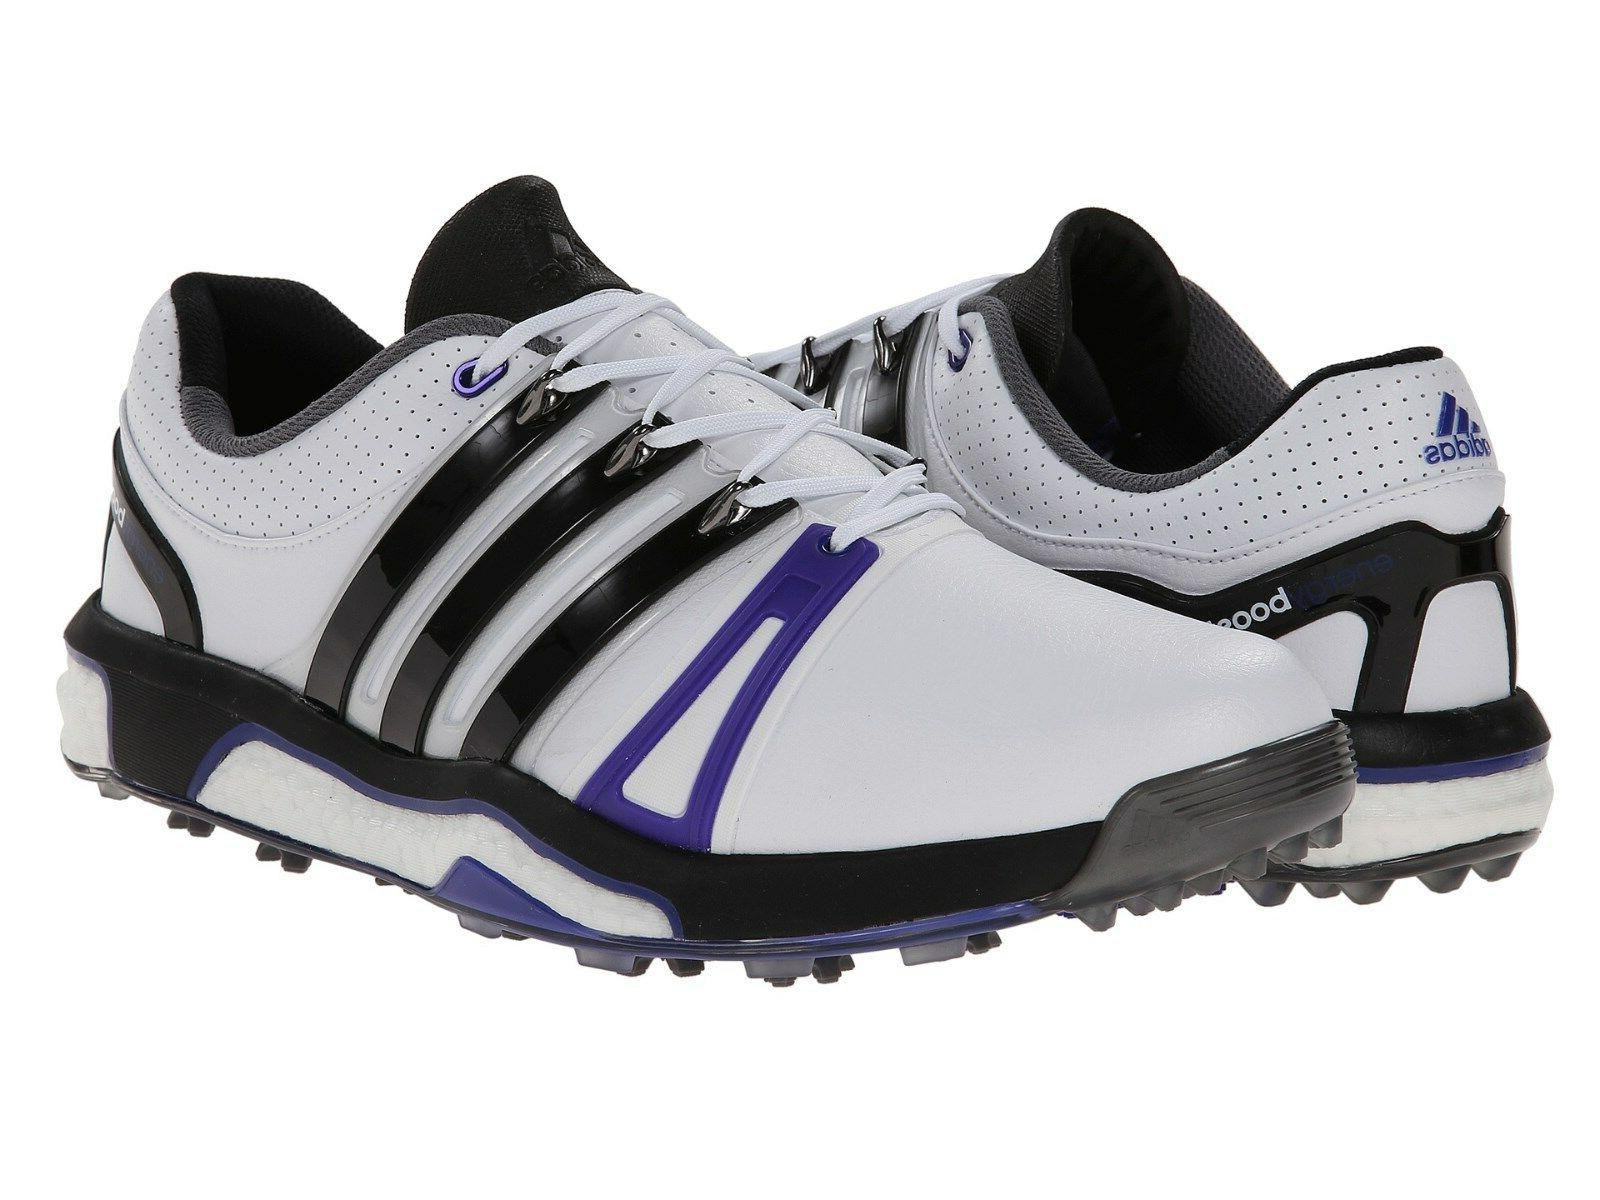 asym lh energy boost synthetic